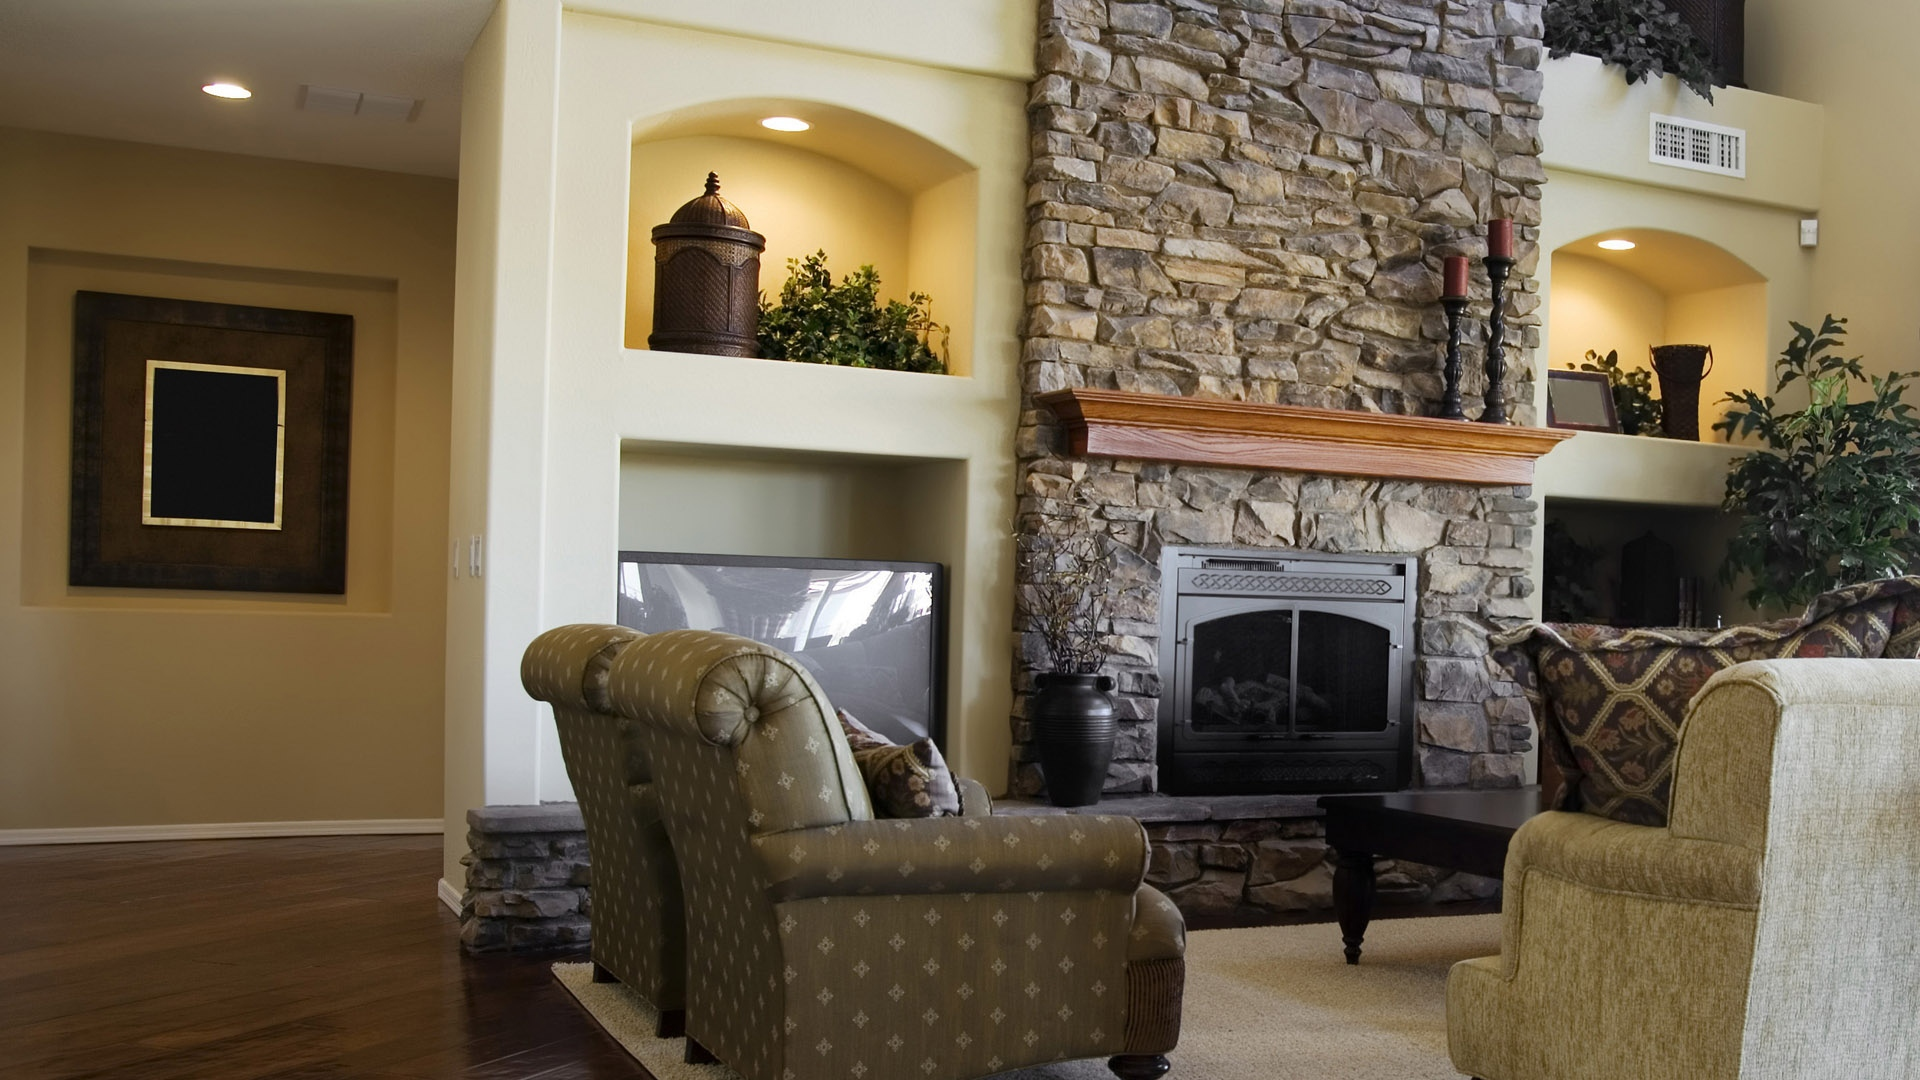 download wallpaper 1920x1080 living room chair fireplace style